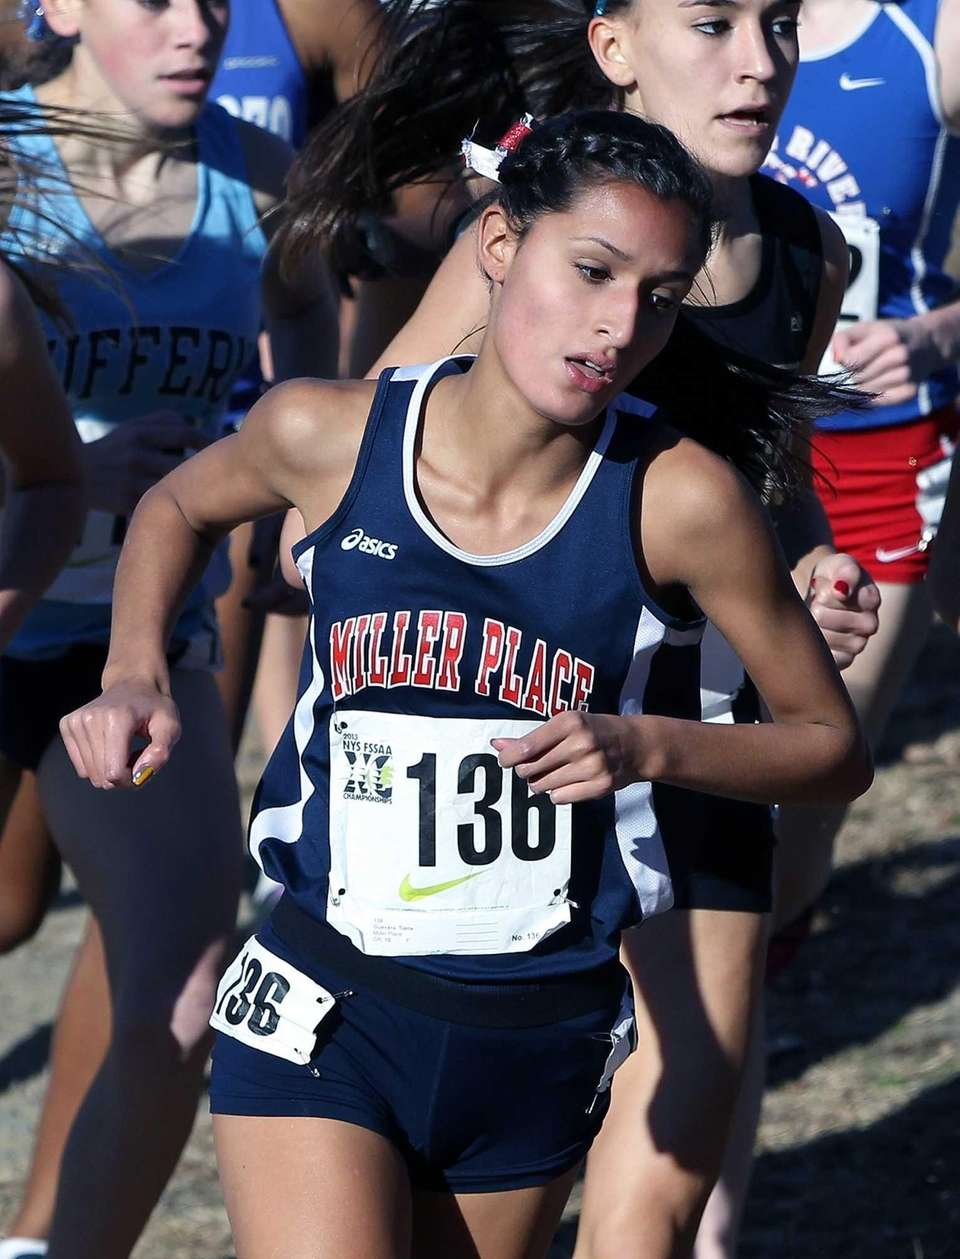 Miller Place's Tiana Guevara came in 14th place